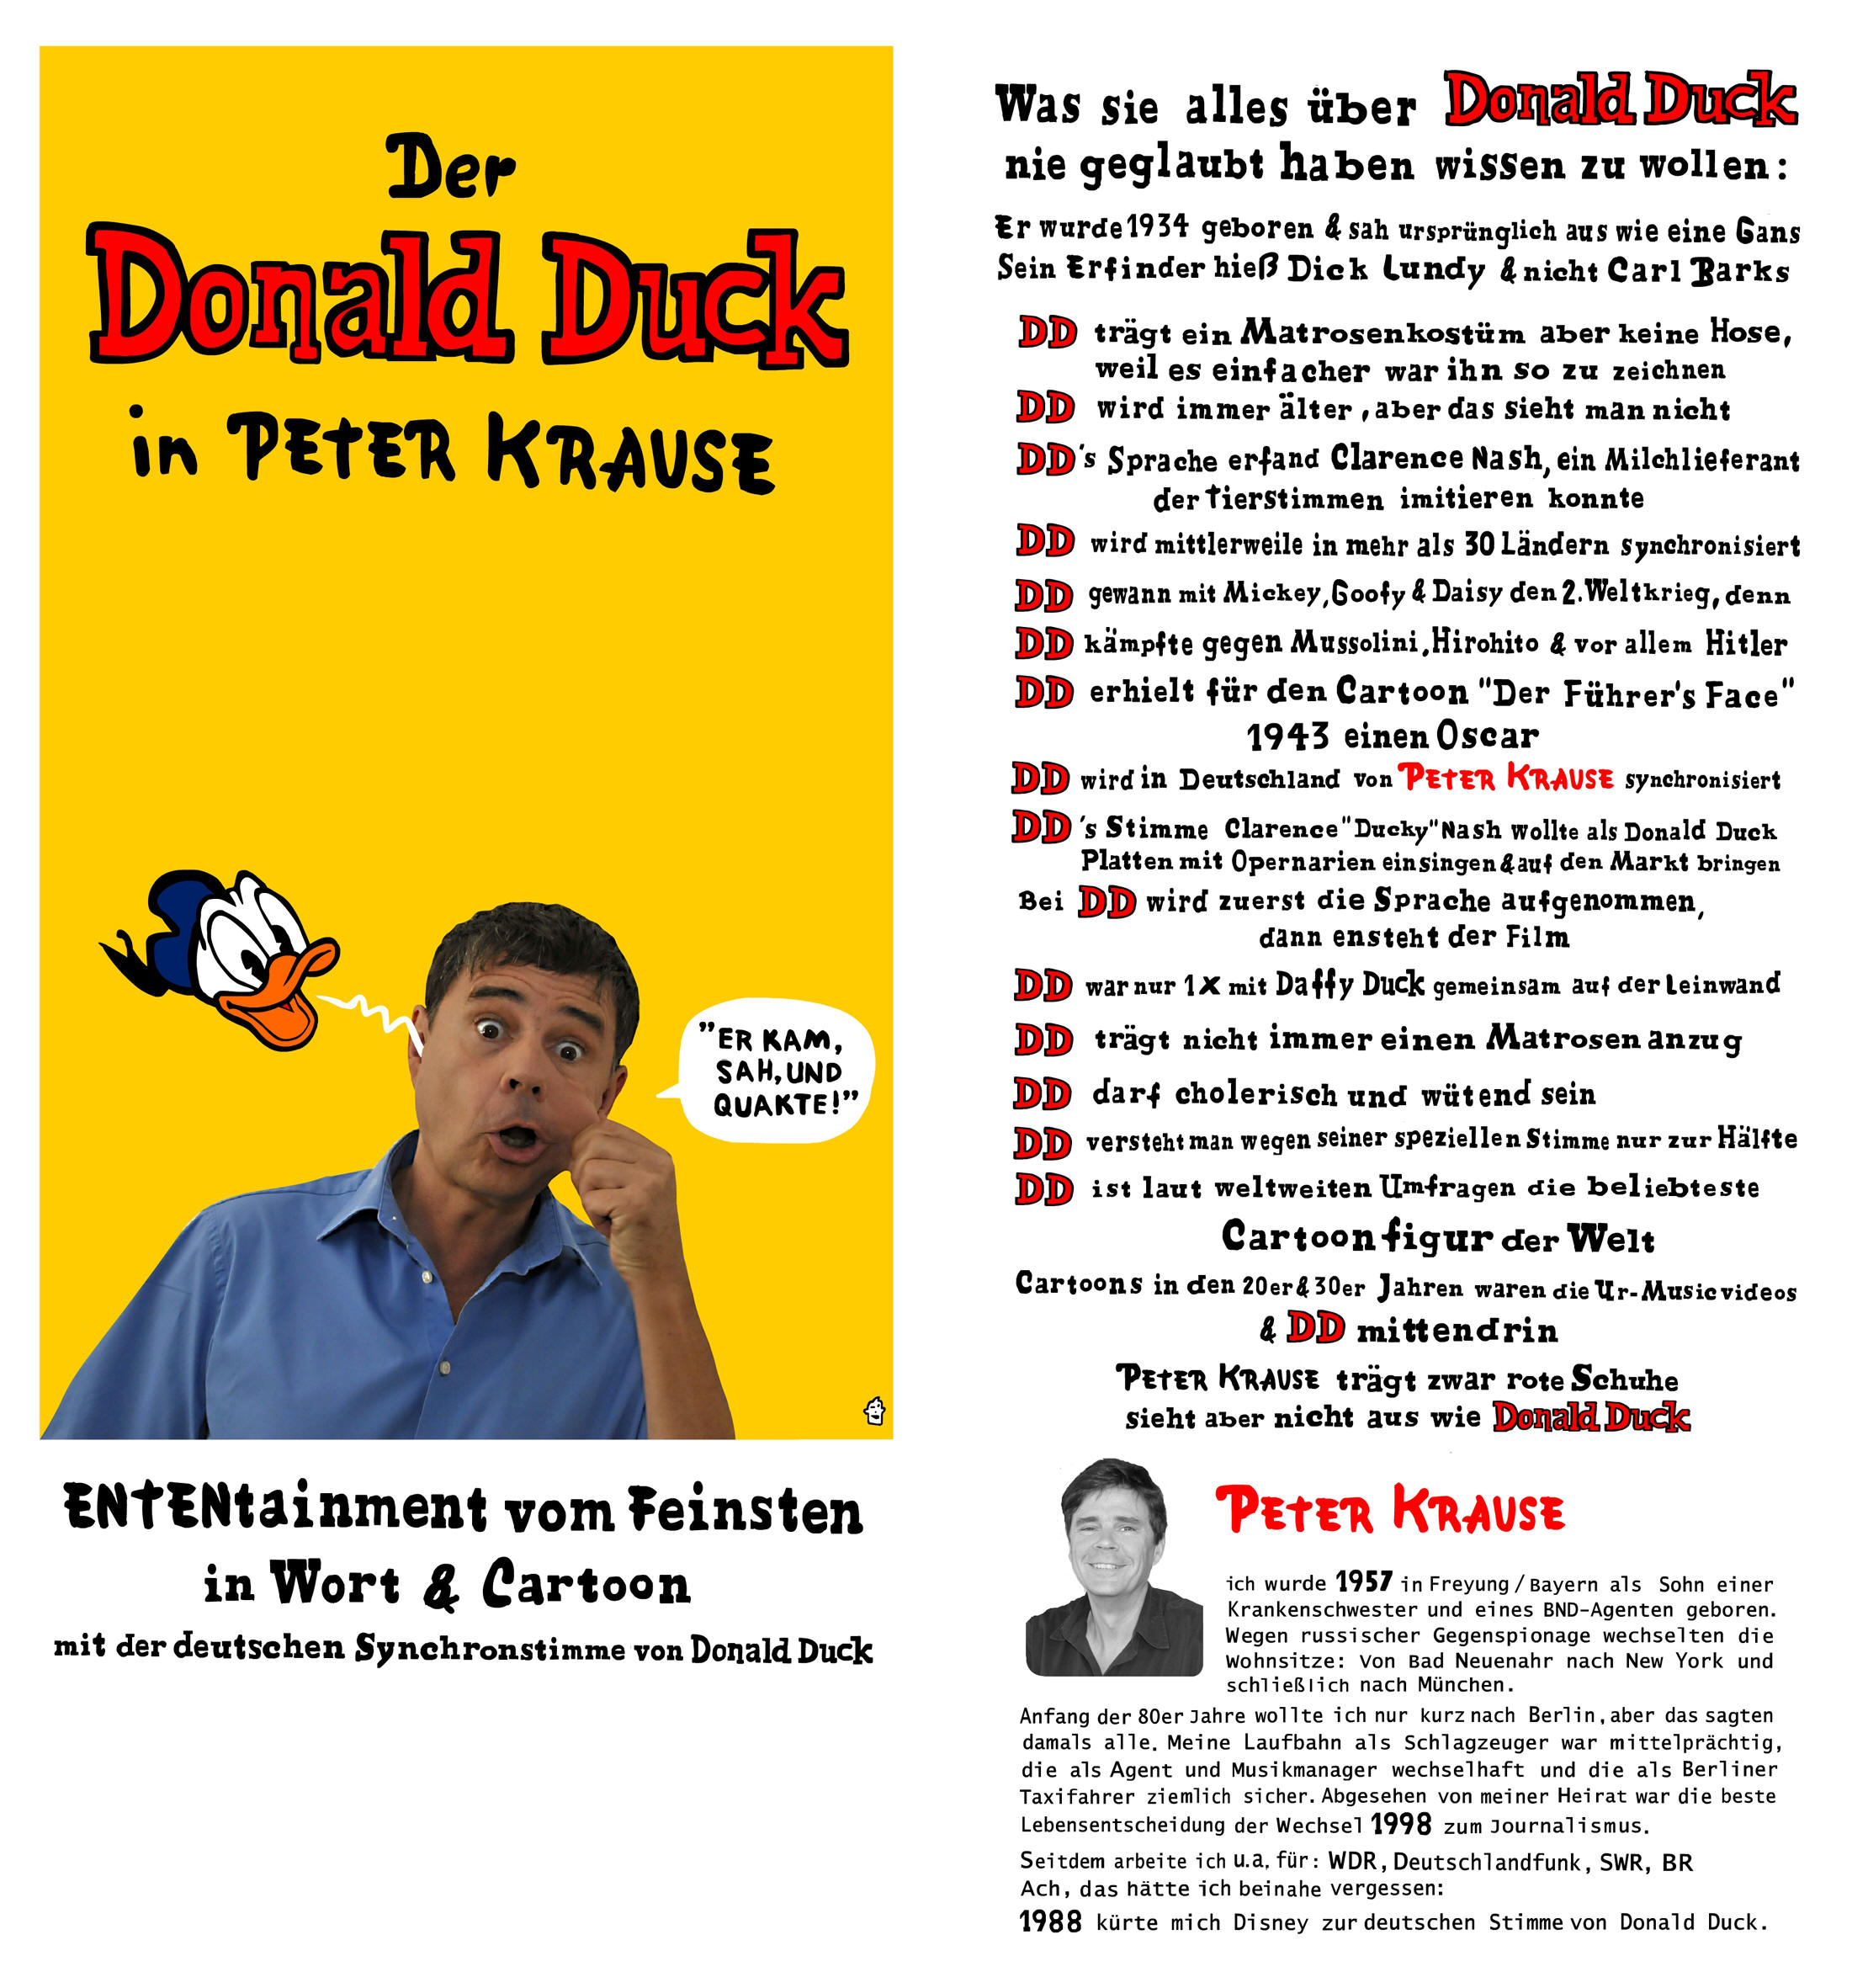 Donadl Duck - Peter Krause